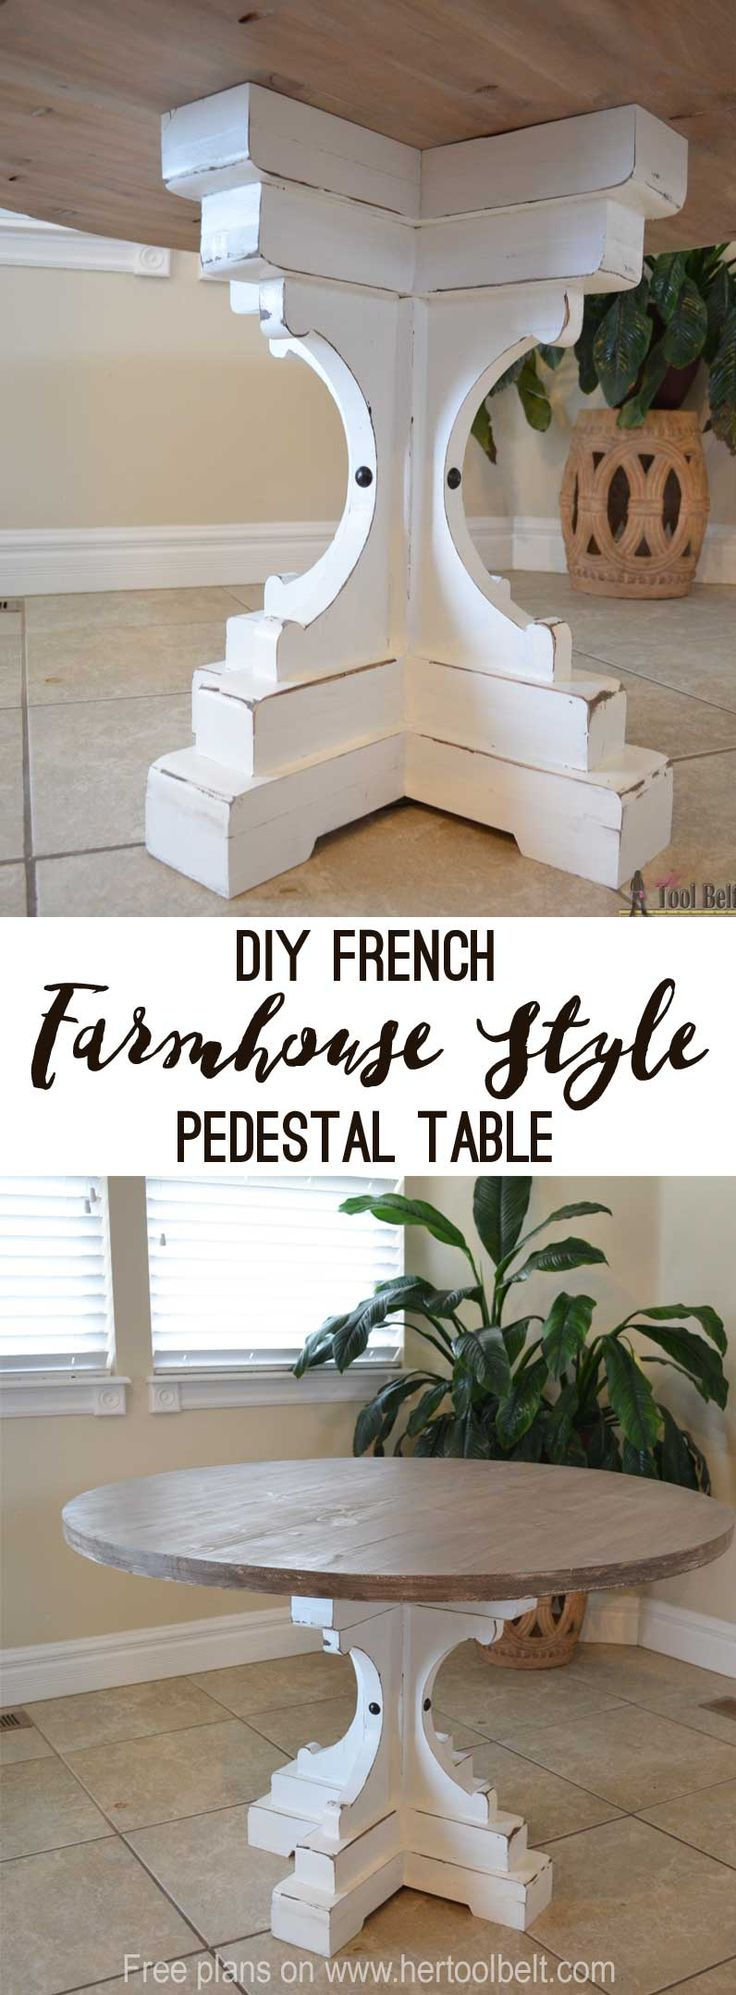 Roundup 10 Inspiring Budget Friendly Bedroom Makeovers: Best 25+ Kitchen Tables Ideas On Pinterest